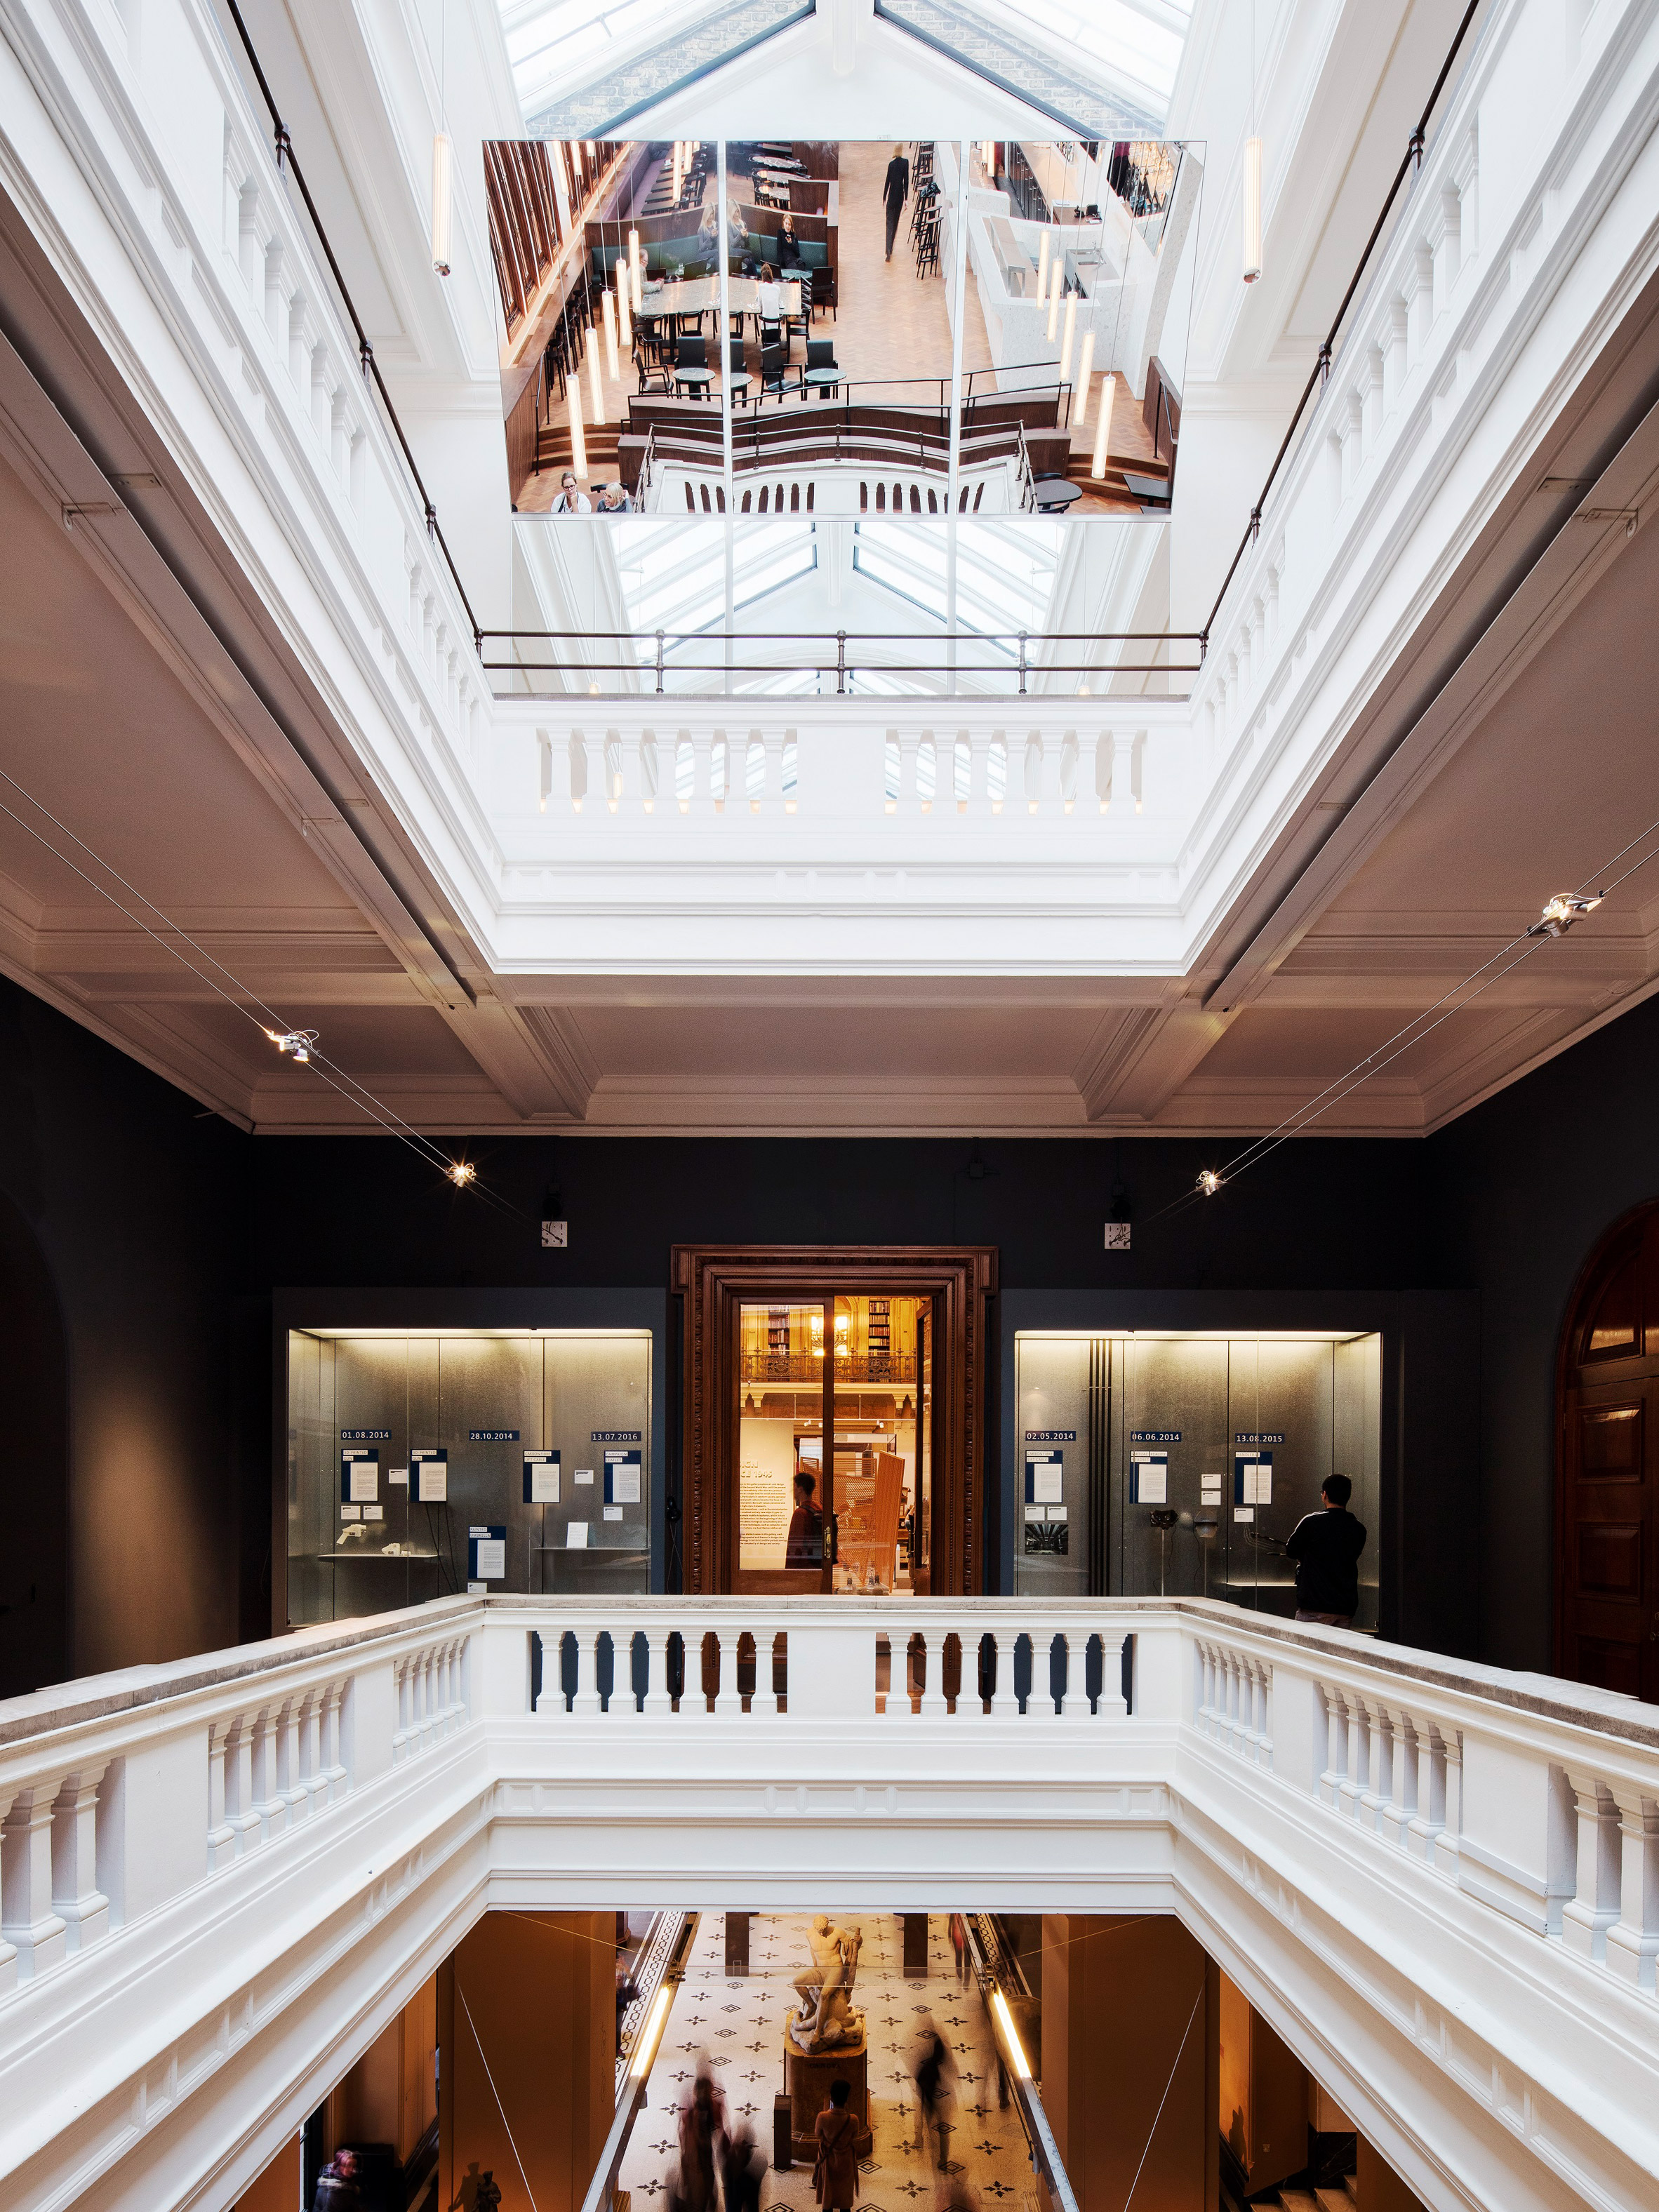 V&A Members' Room by Carmody Groarke